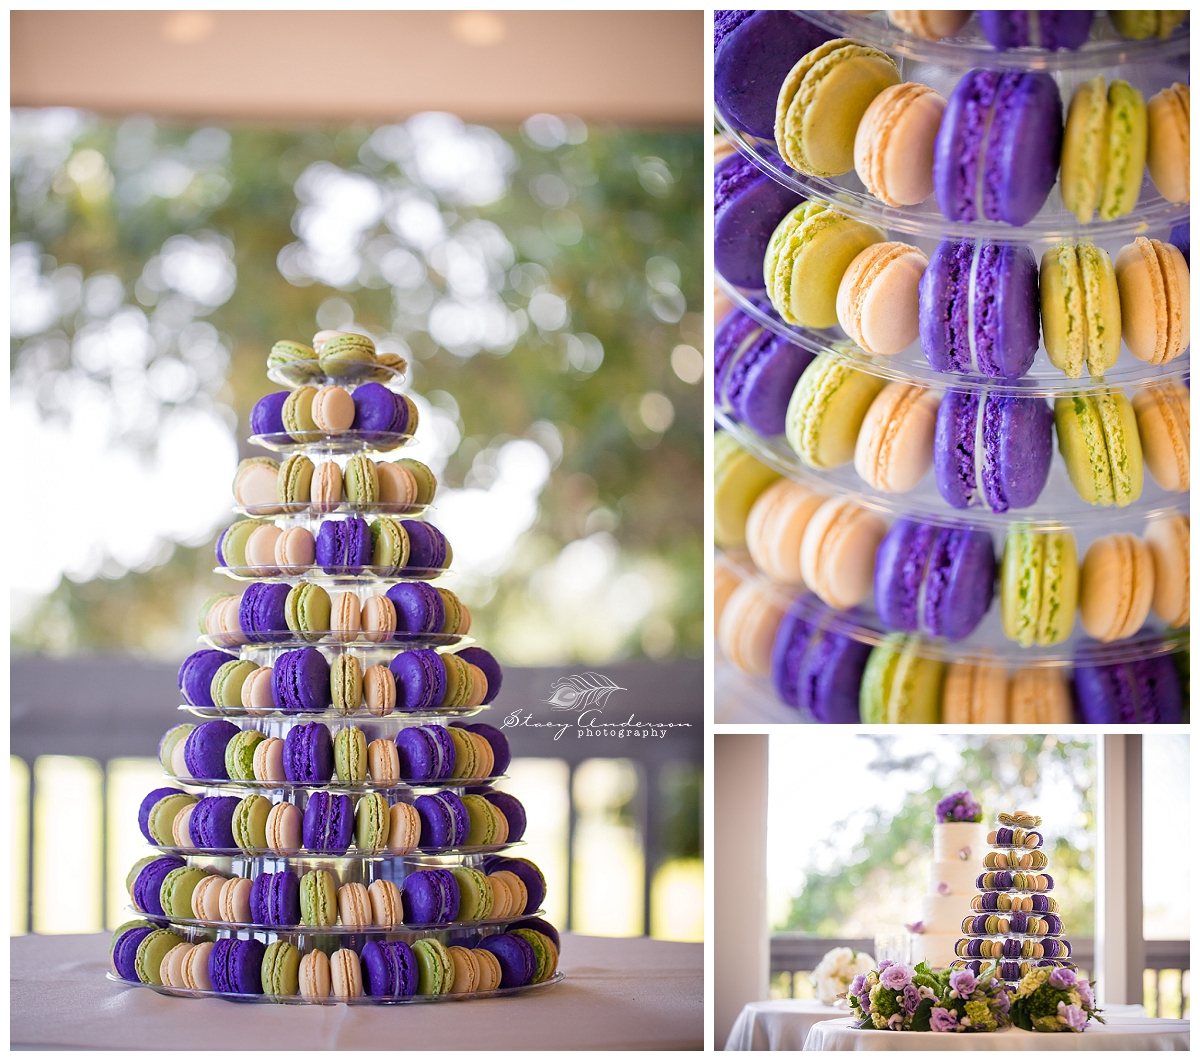 I love this new trend of having macarons at weddings!